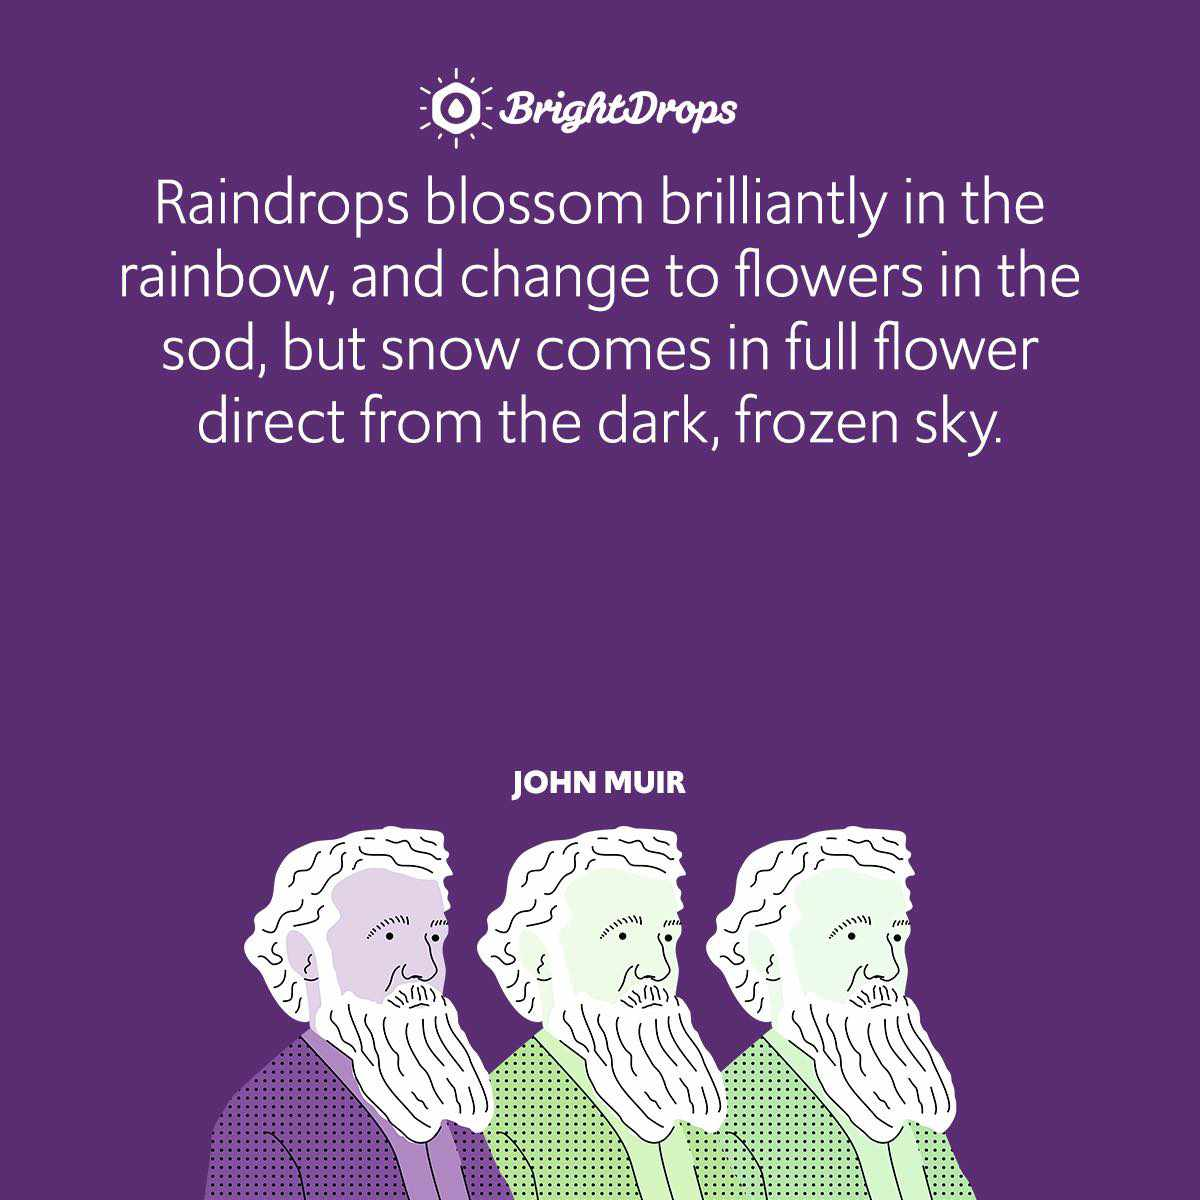 Raindrops blossom brilliantly in the rainbow, and change to flowers in the sod, but snow comes in full flower direct from the dark, frozen sky.